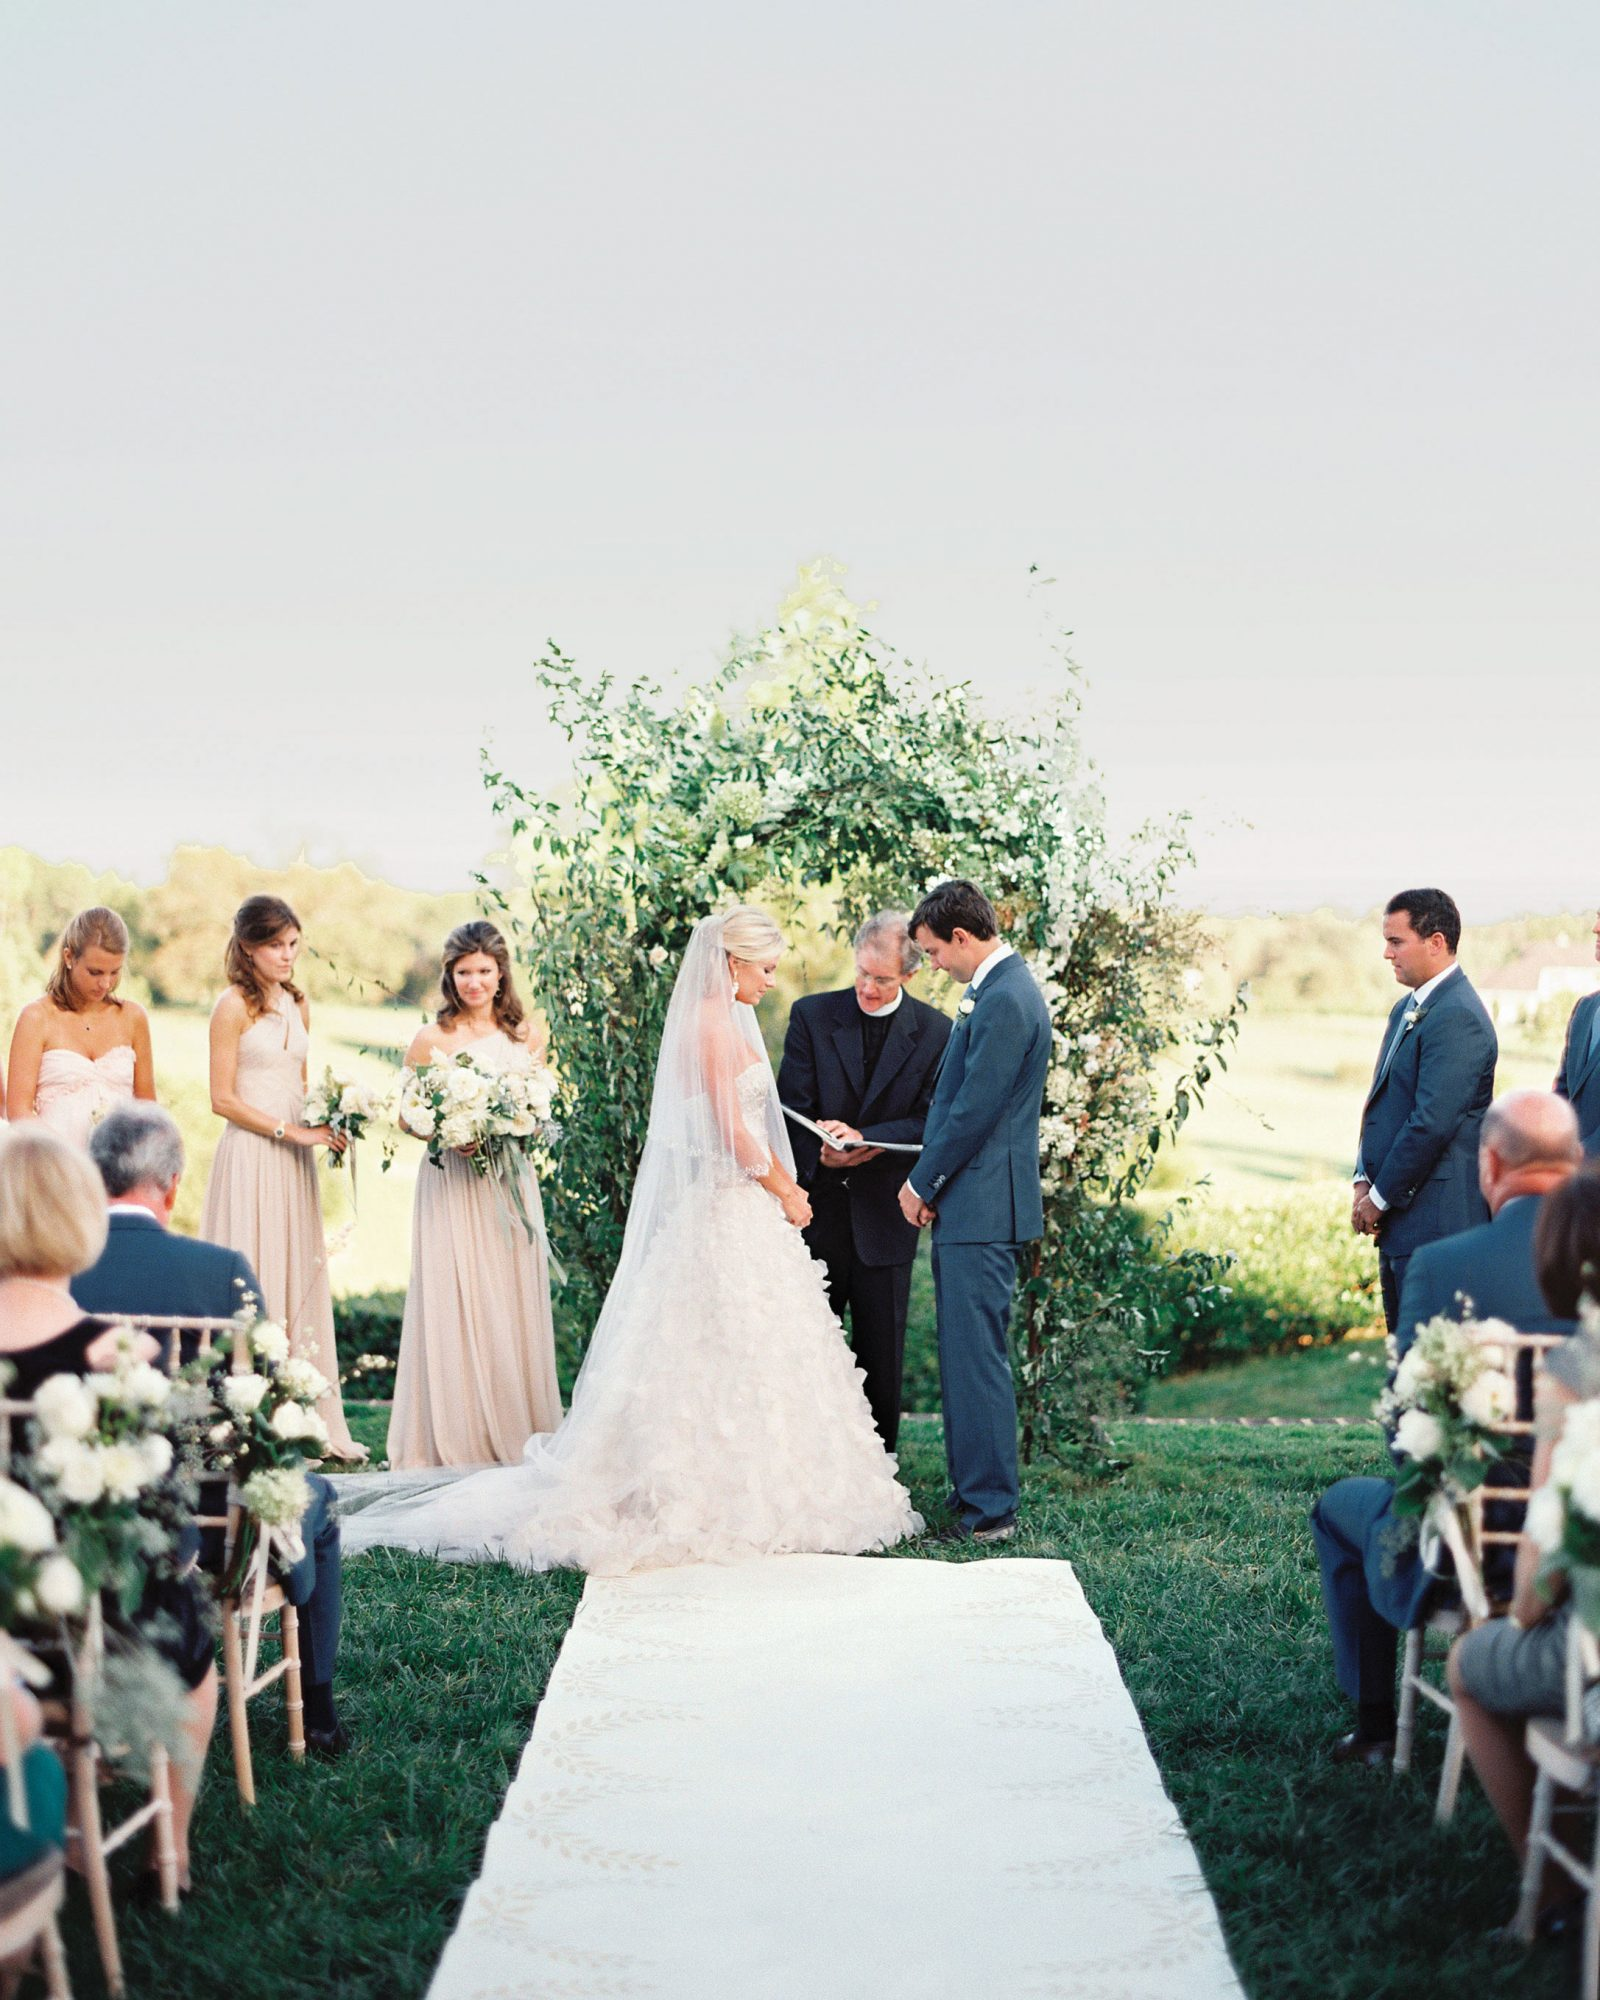 mmwds110148-004772-expert-advice-couple-at-altar.jpg